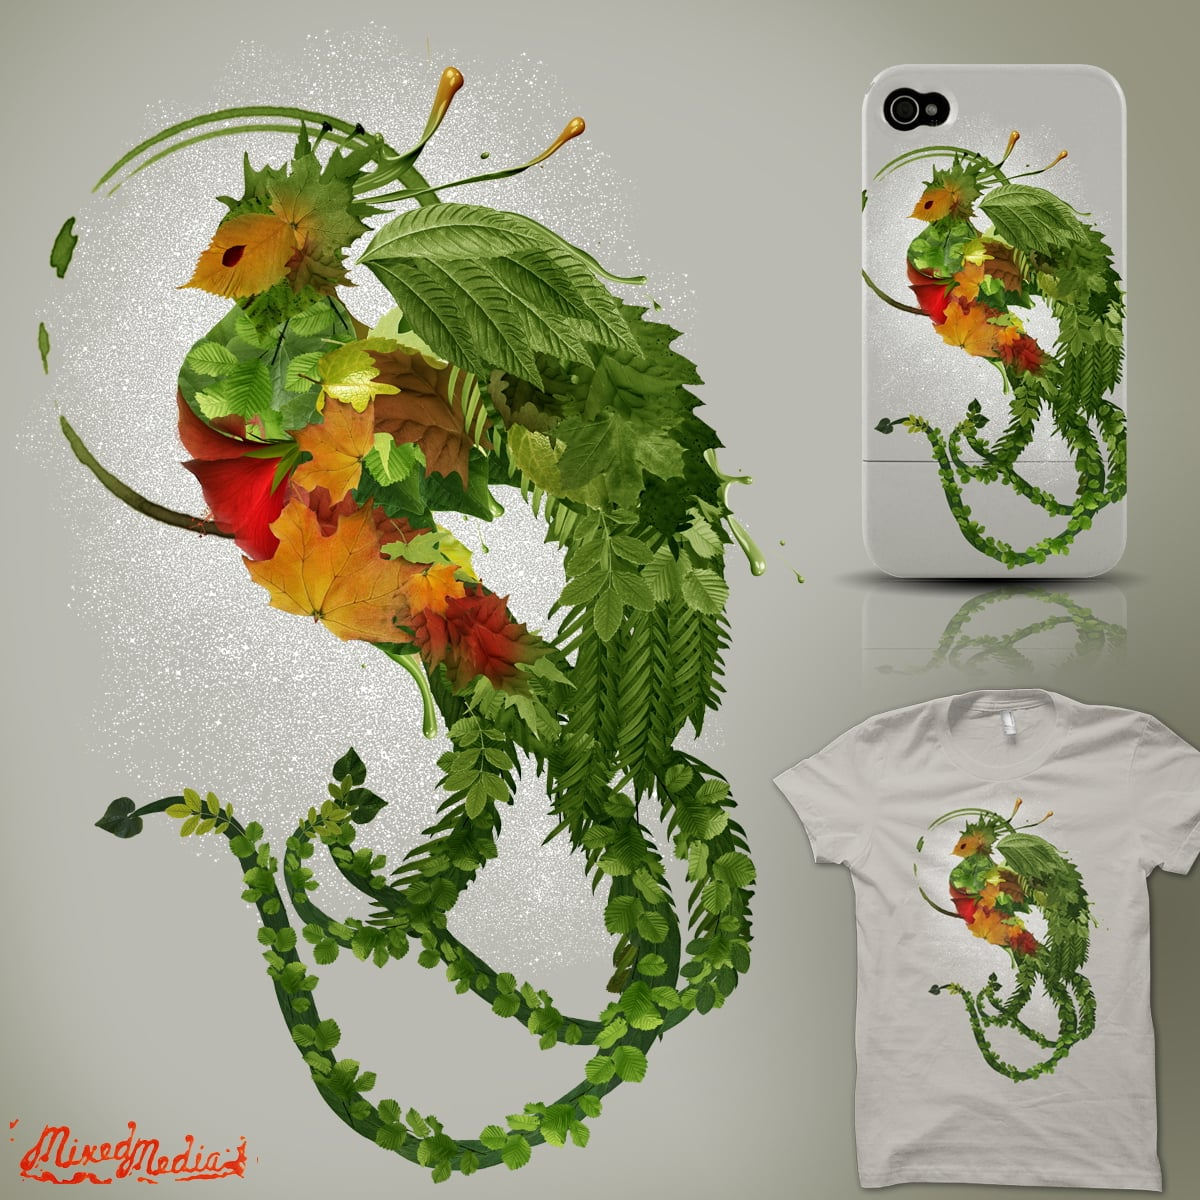 leaves at dawn by alnavasord on Threadless